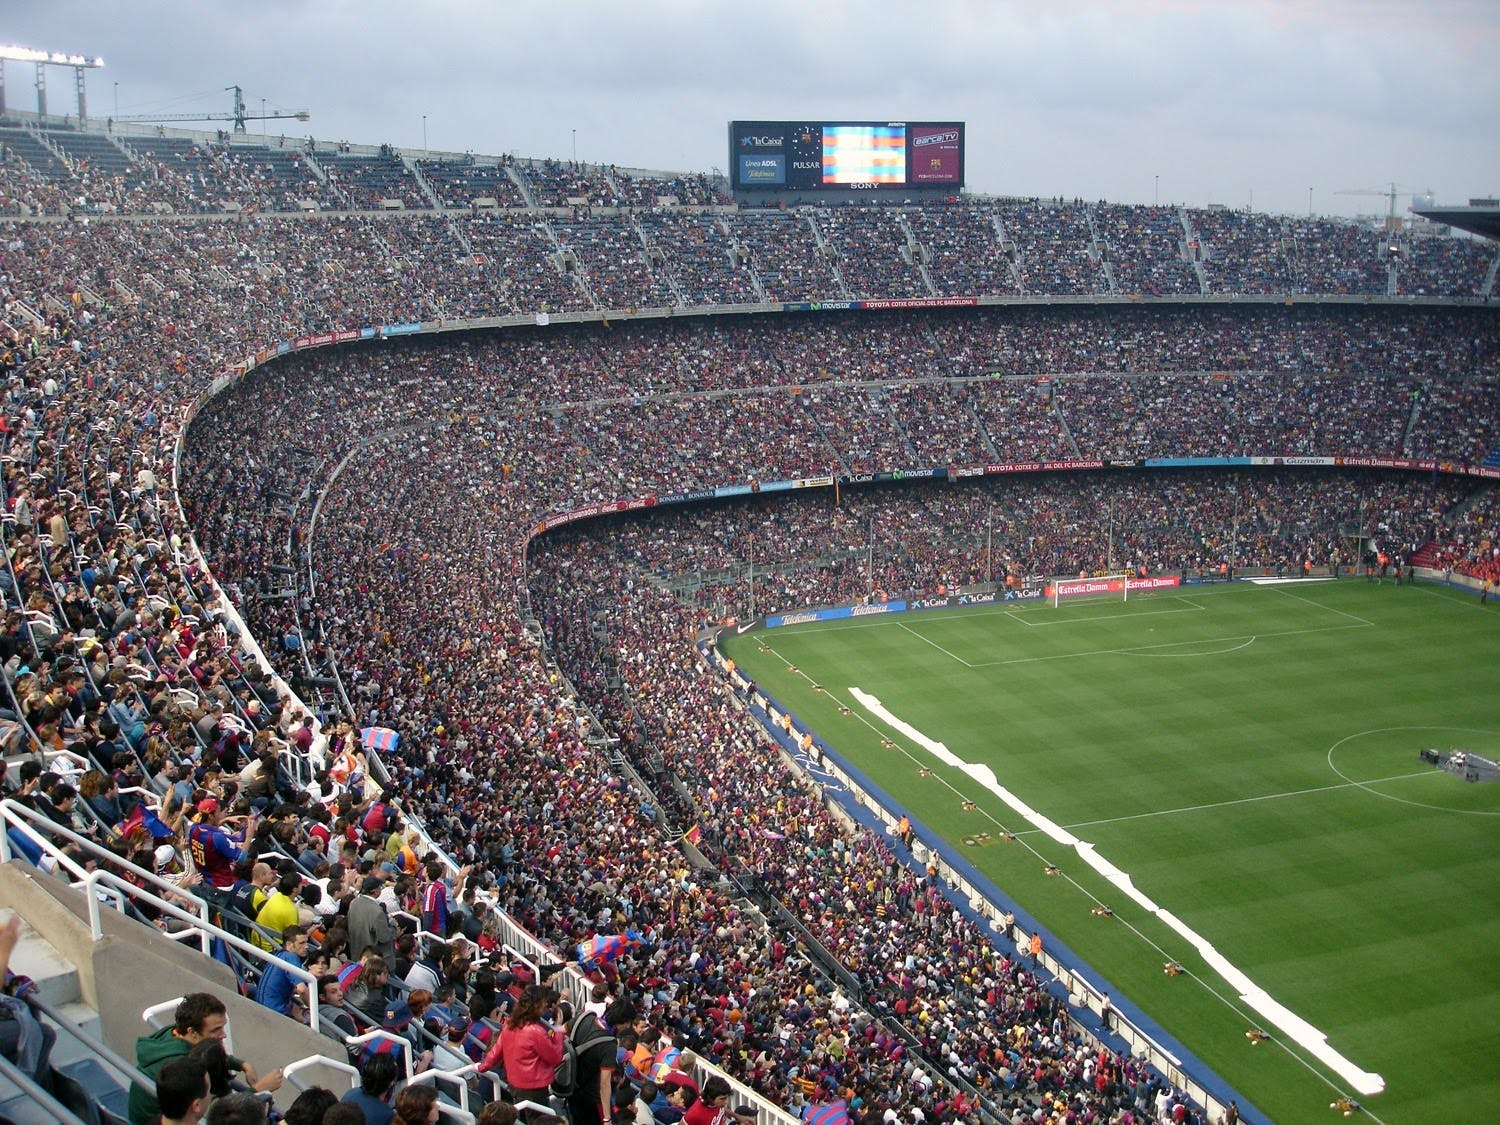 Soccer stadium filled with fans